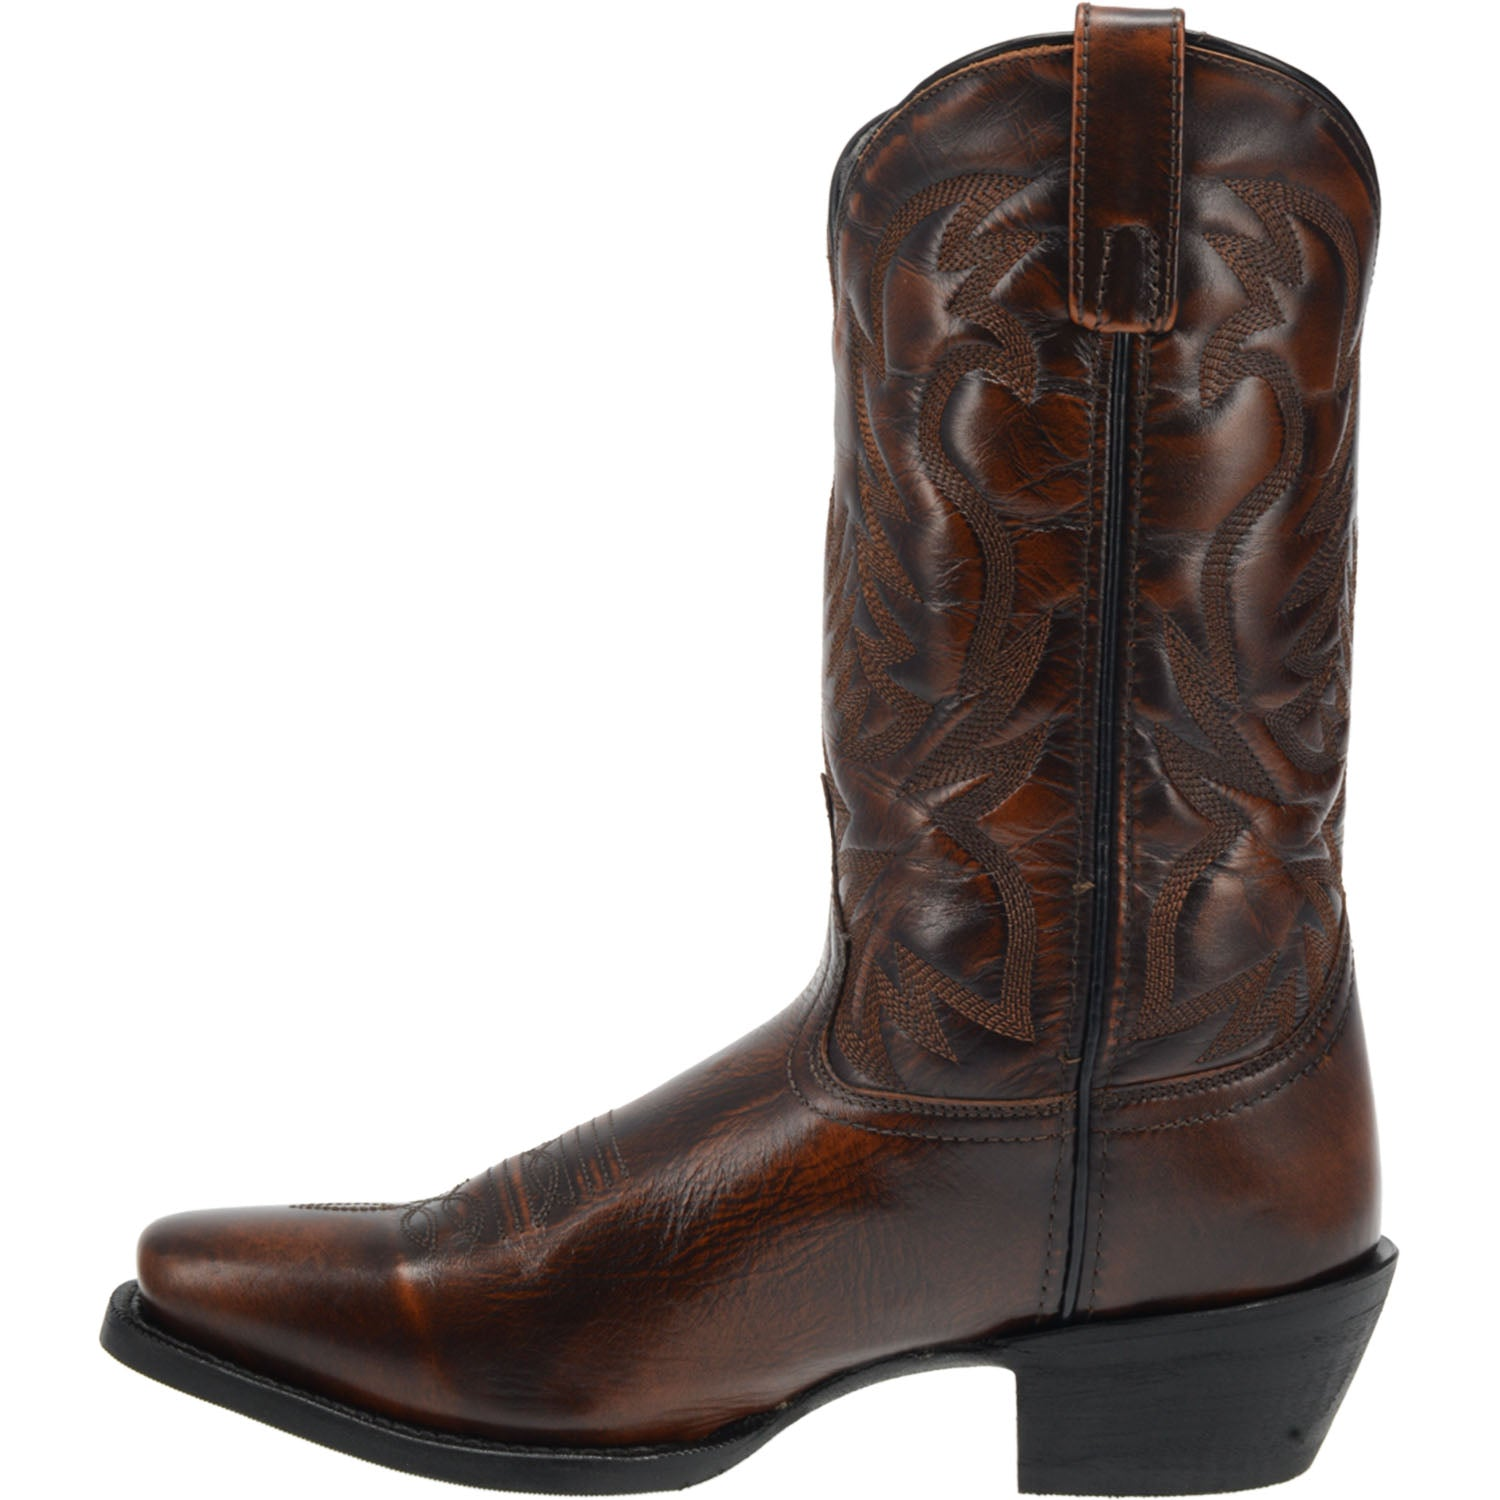 LAWTON LEATHER BOOT